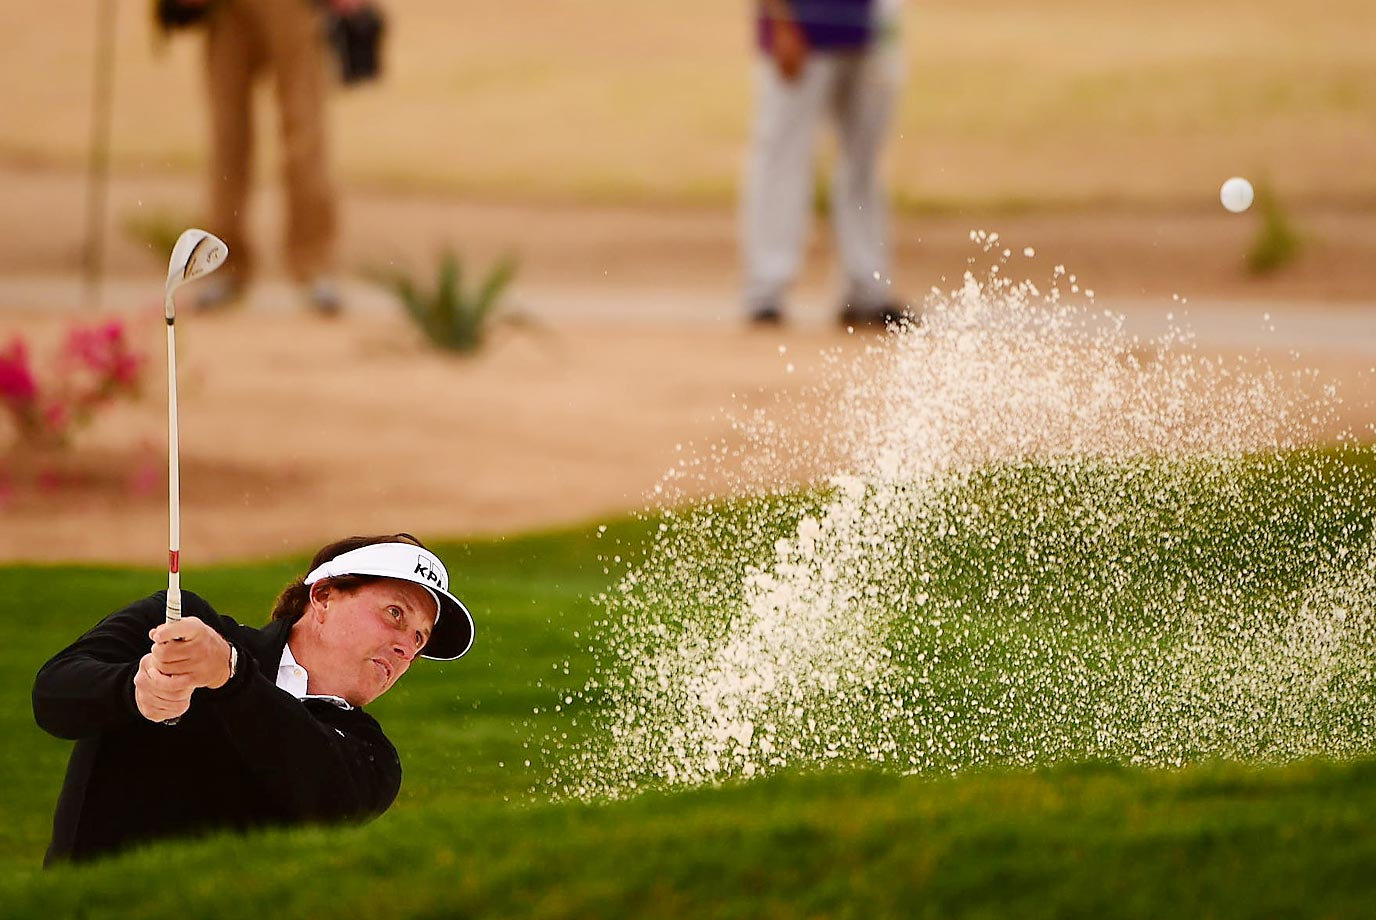 Phil Mickelson hits his third shot on 13 out of the green side bunker during Round 1 of the 2015 Waste Management Phoenix Open.